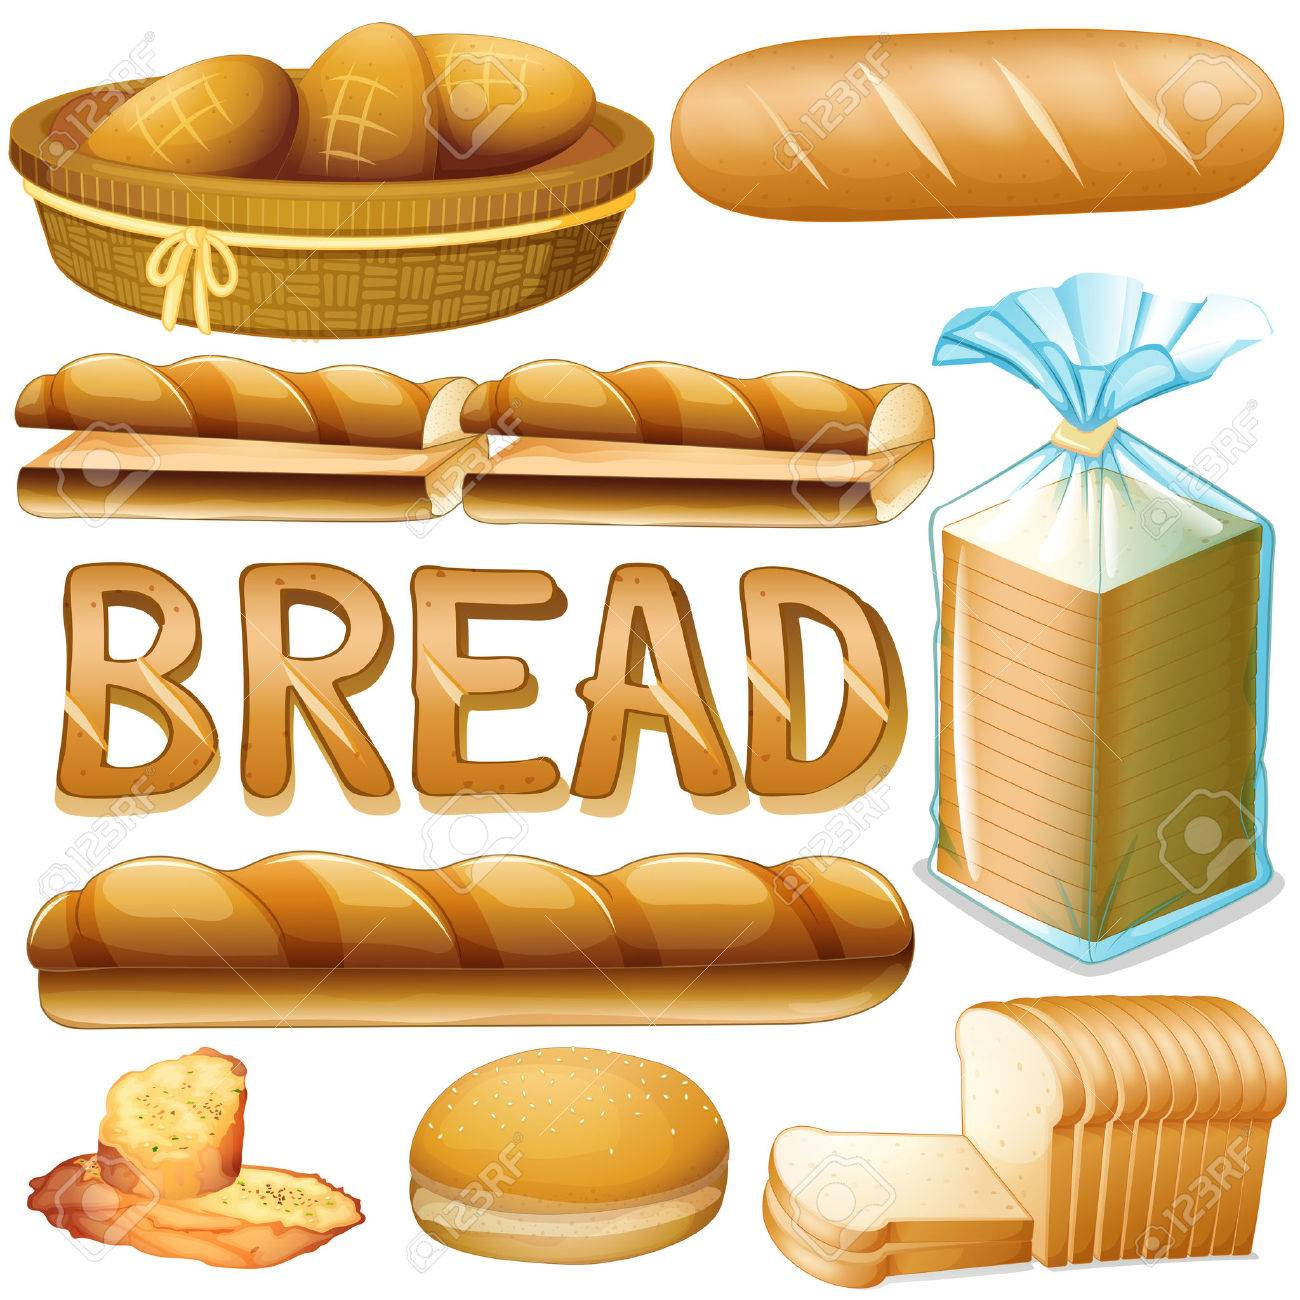 Bread in various kinds illustration - 45533389